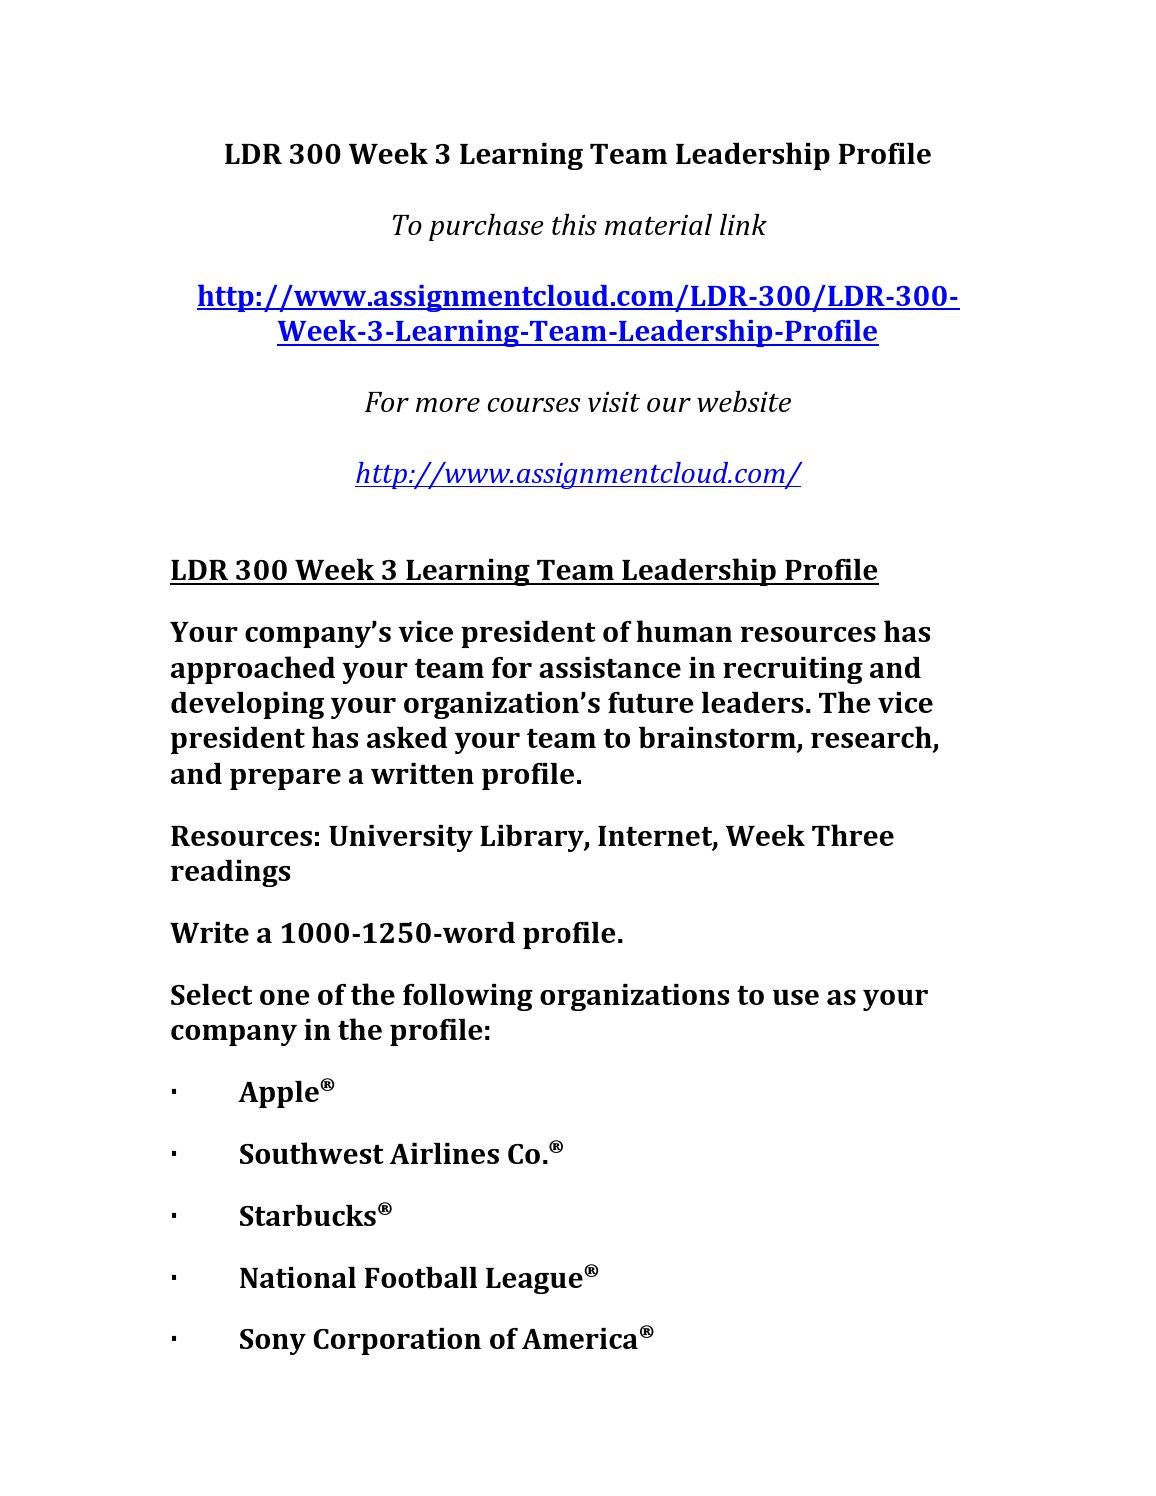 ldr 300 week 5 team assignment View essay - ldr 300 week 2 team assignment leadership profile part i from ldr 300 at university of phoenix 1 leadership profile part i 2 leadership profile part i leadership profile part i the.